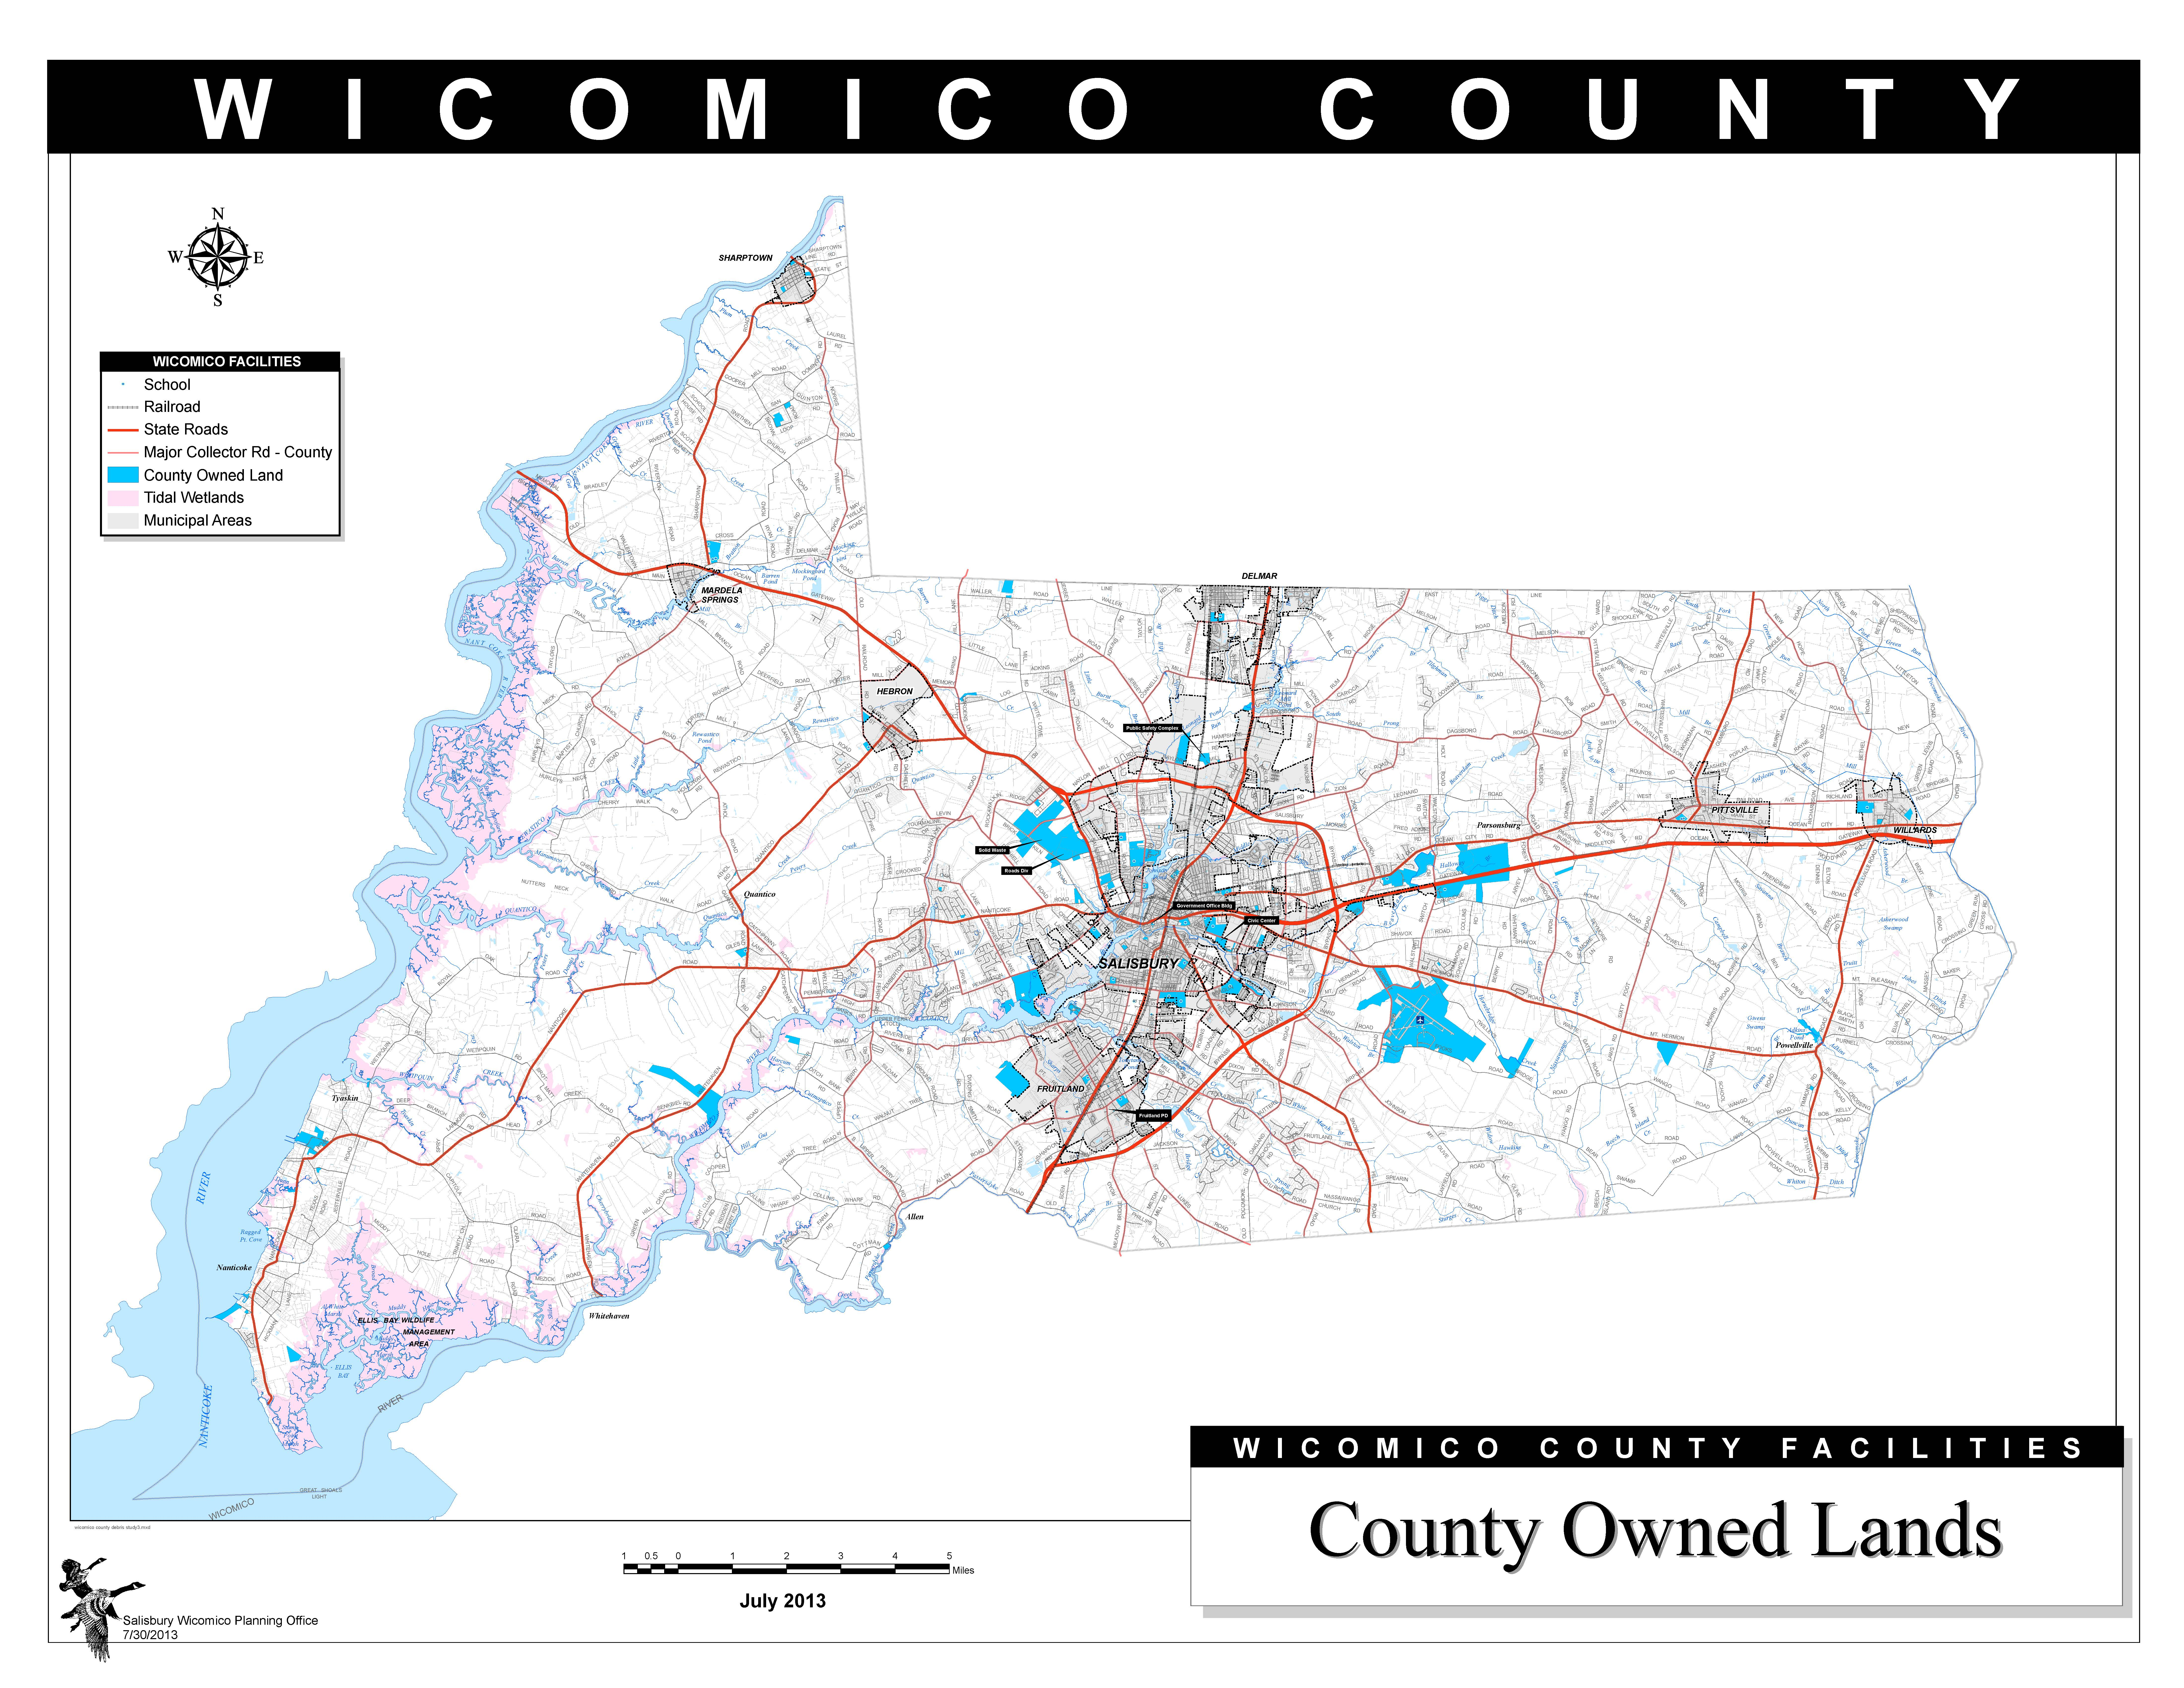 Wicomico County Facilities